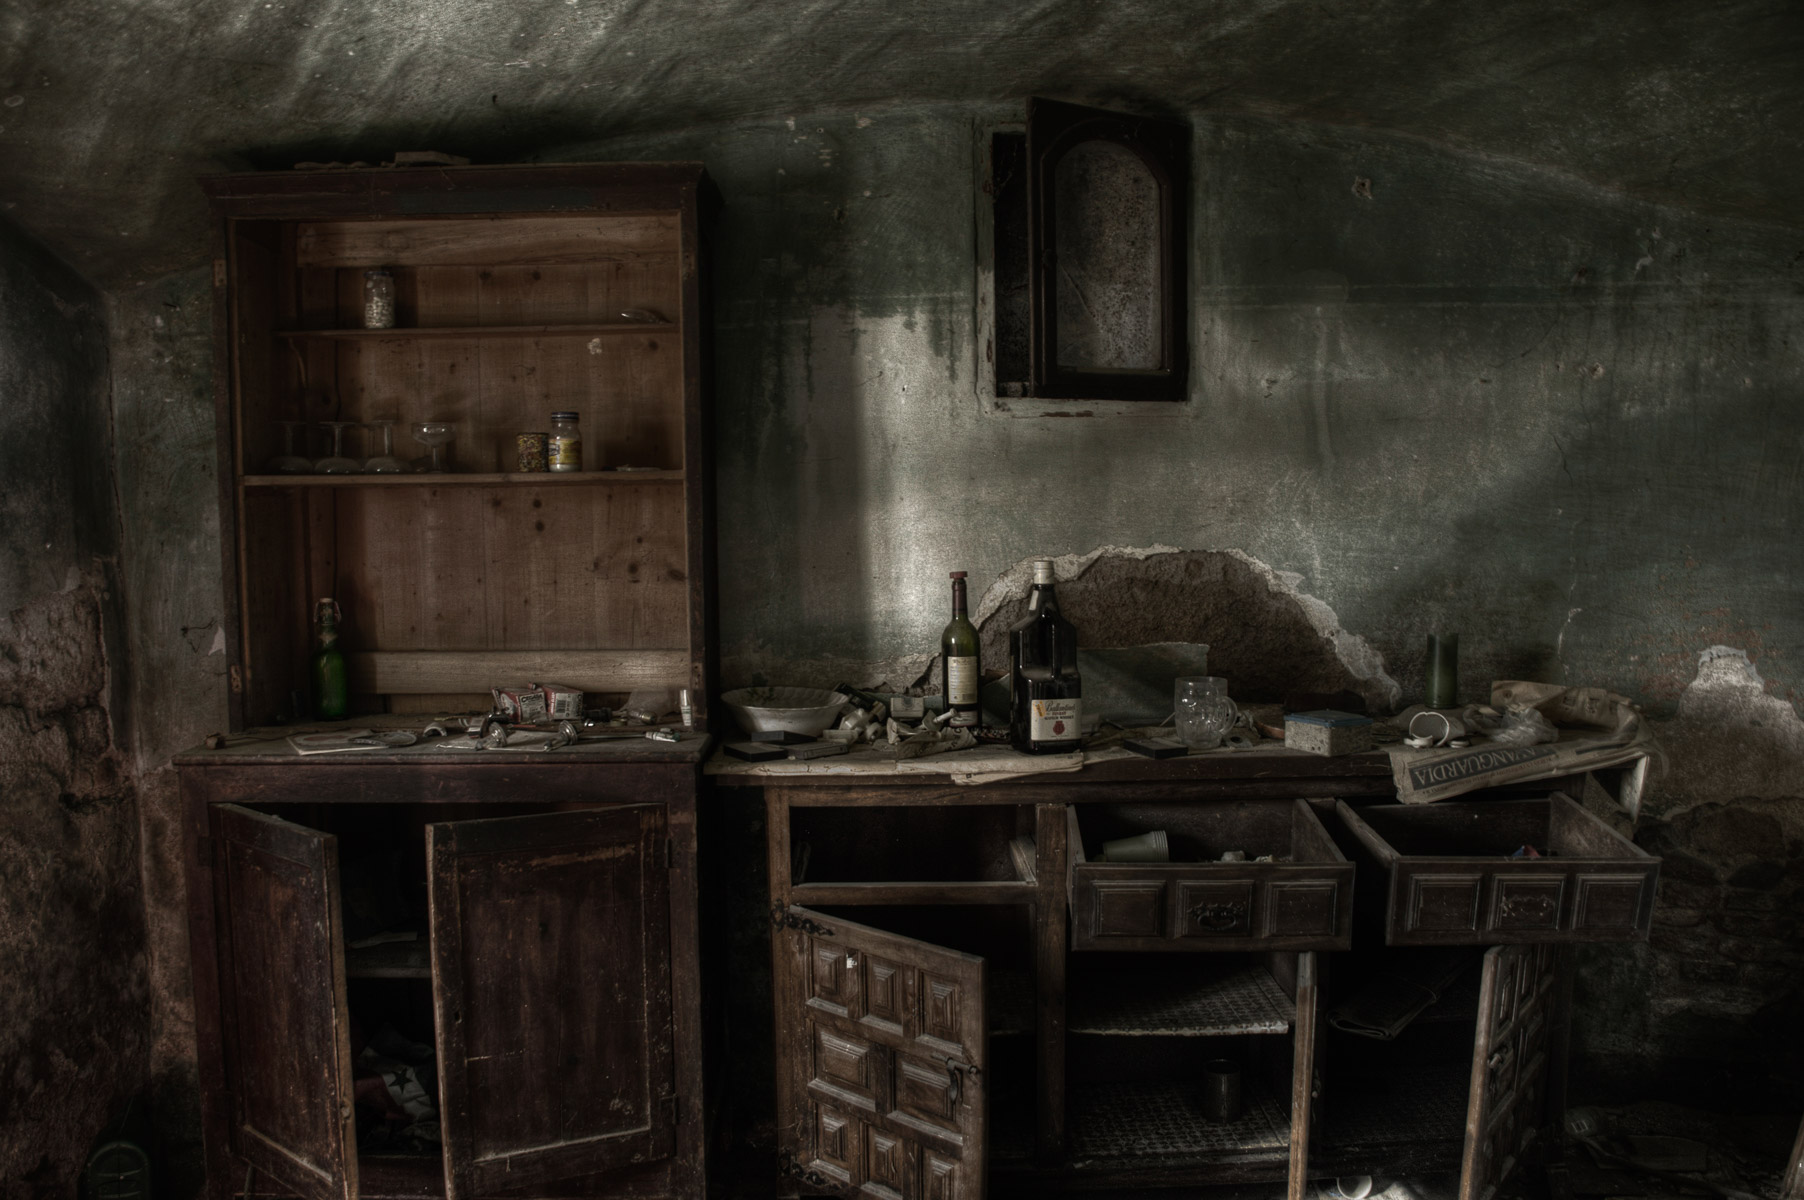 abandoned-places-in-europe-alicia-rius-photography.jpg